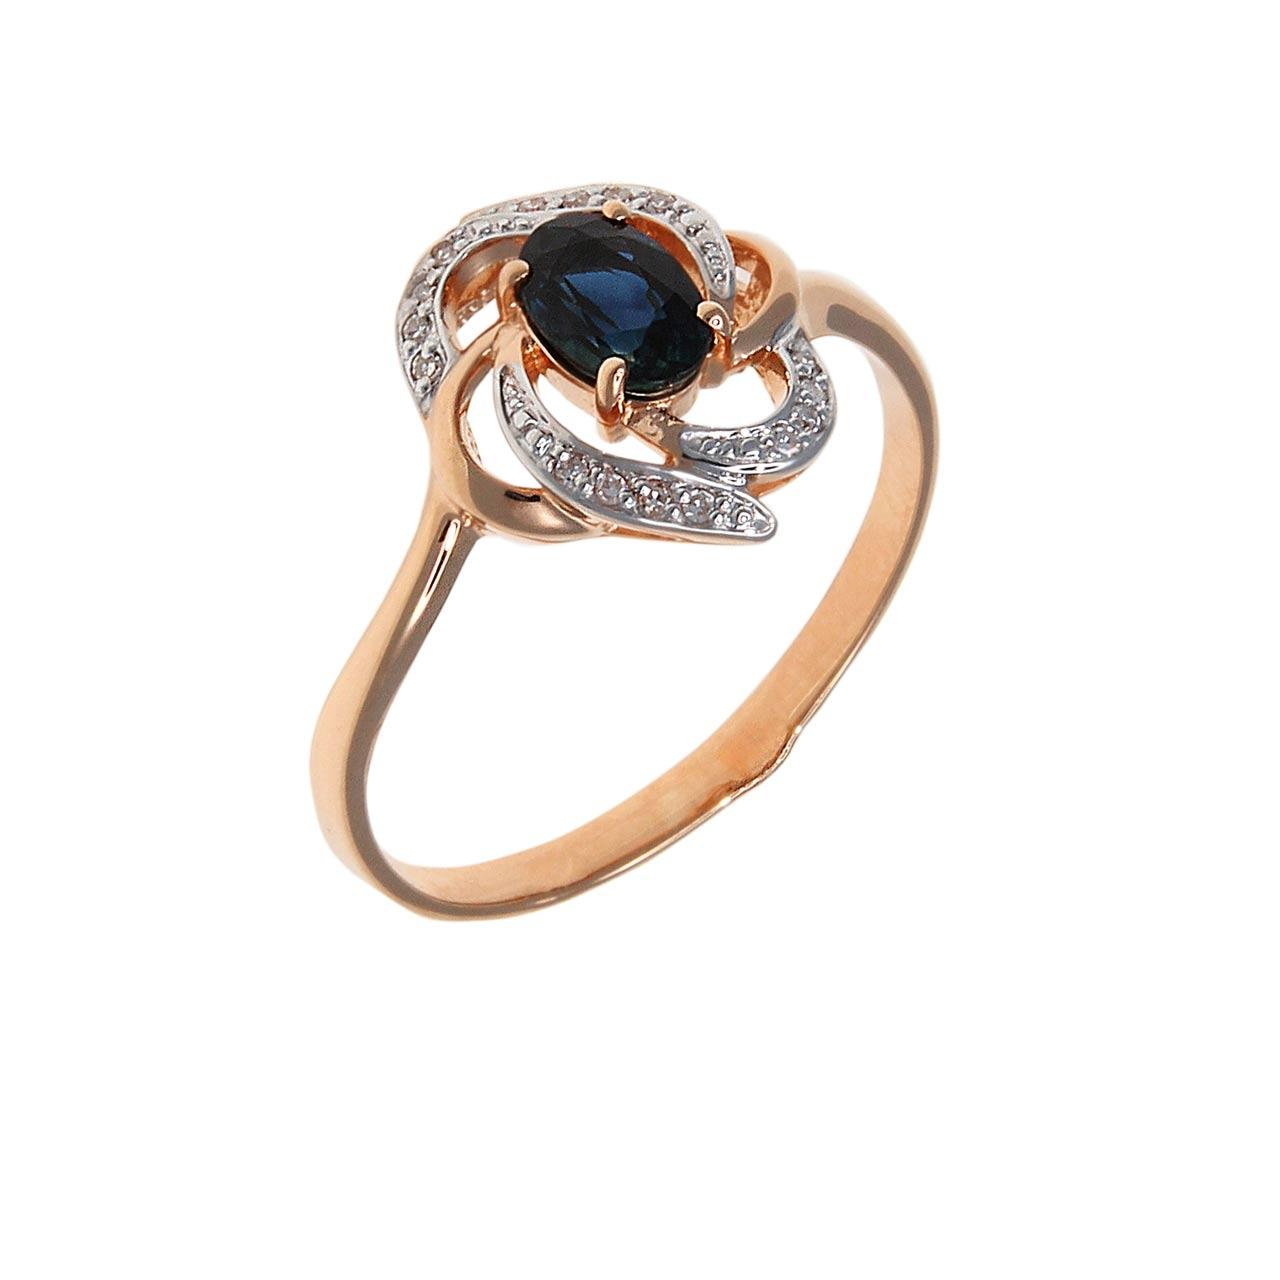 Flower-Inspired Diamond and Sapphire Ring